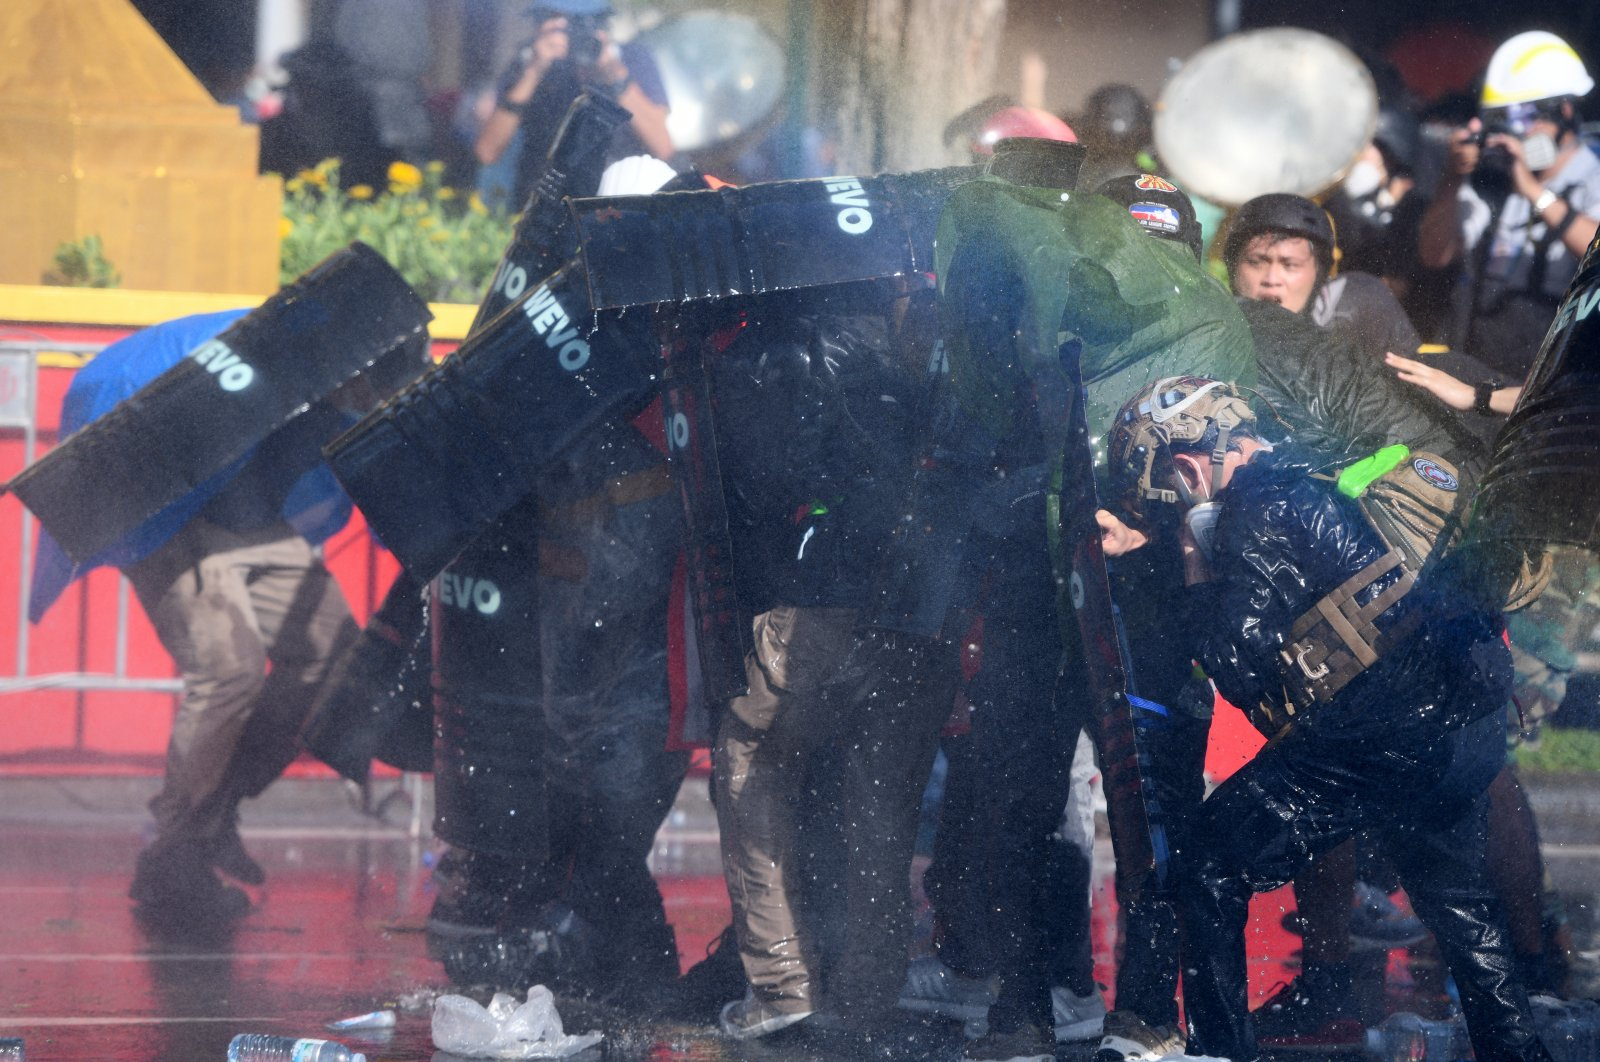 Anti-government protesters take cover as riot police spray them with a water cannon during a march toward Government House, demanding Thai Prime Minister Prayuth Chan-O-Cha's resignation, a mandatory vaccination policy and reform in the monarchy, Bangkok, Thailand, July 18, 2021. (Reuters Photo)